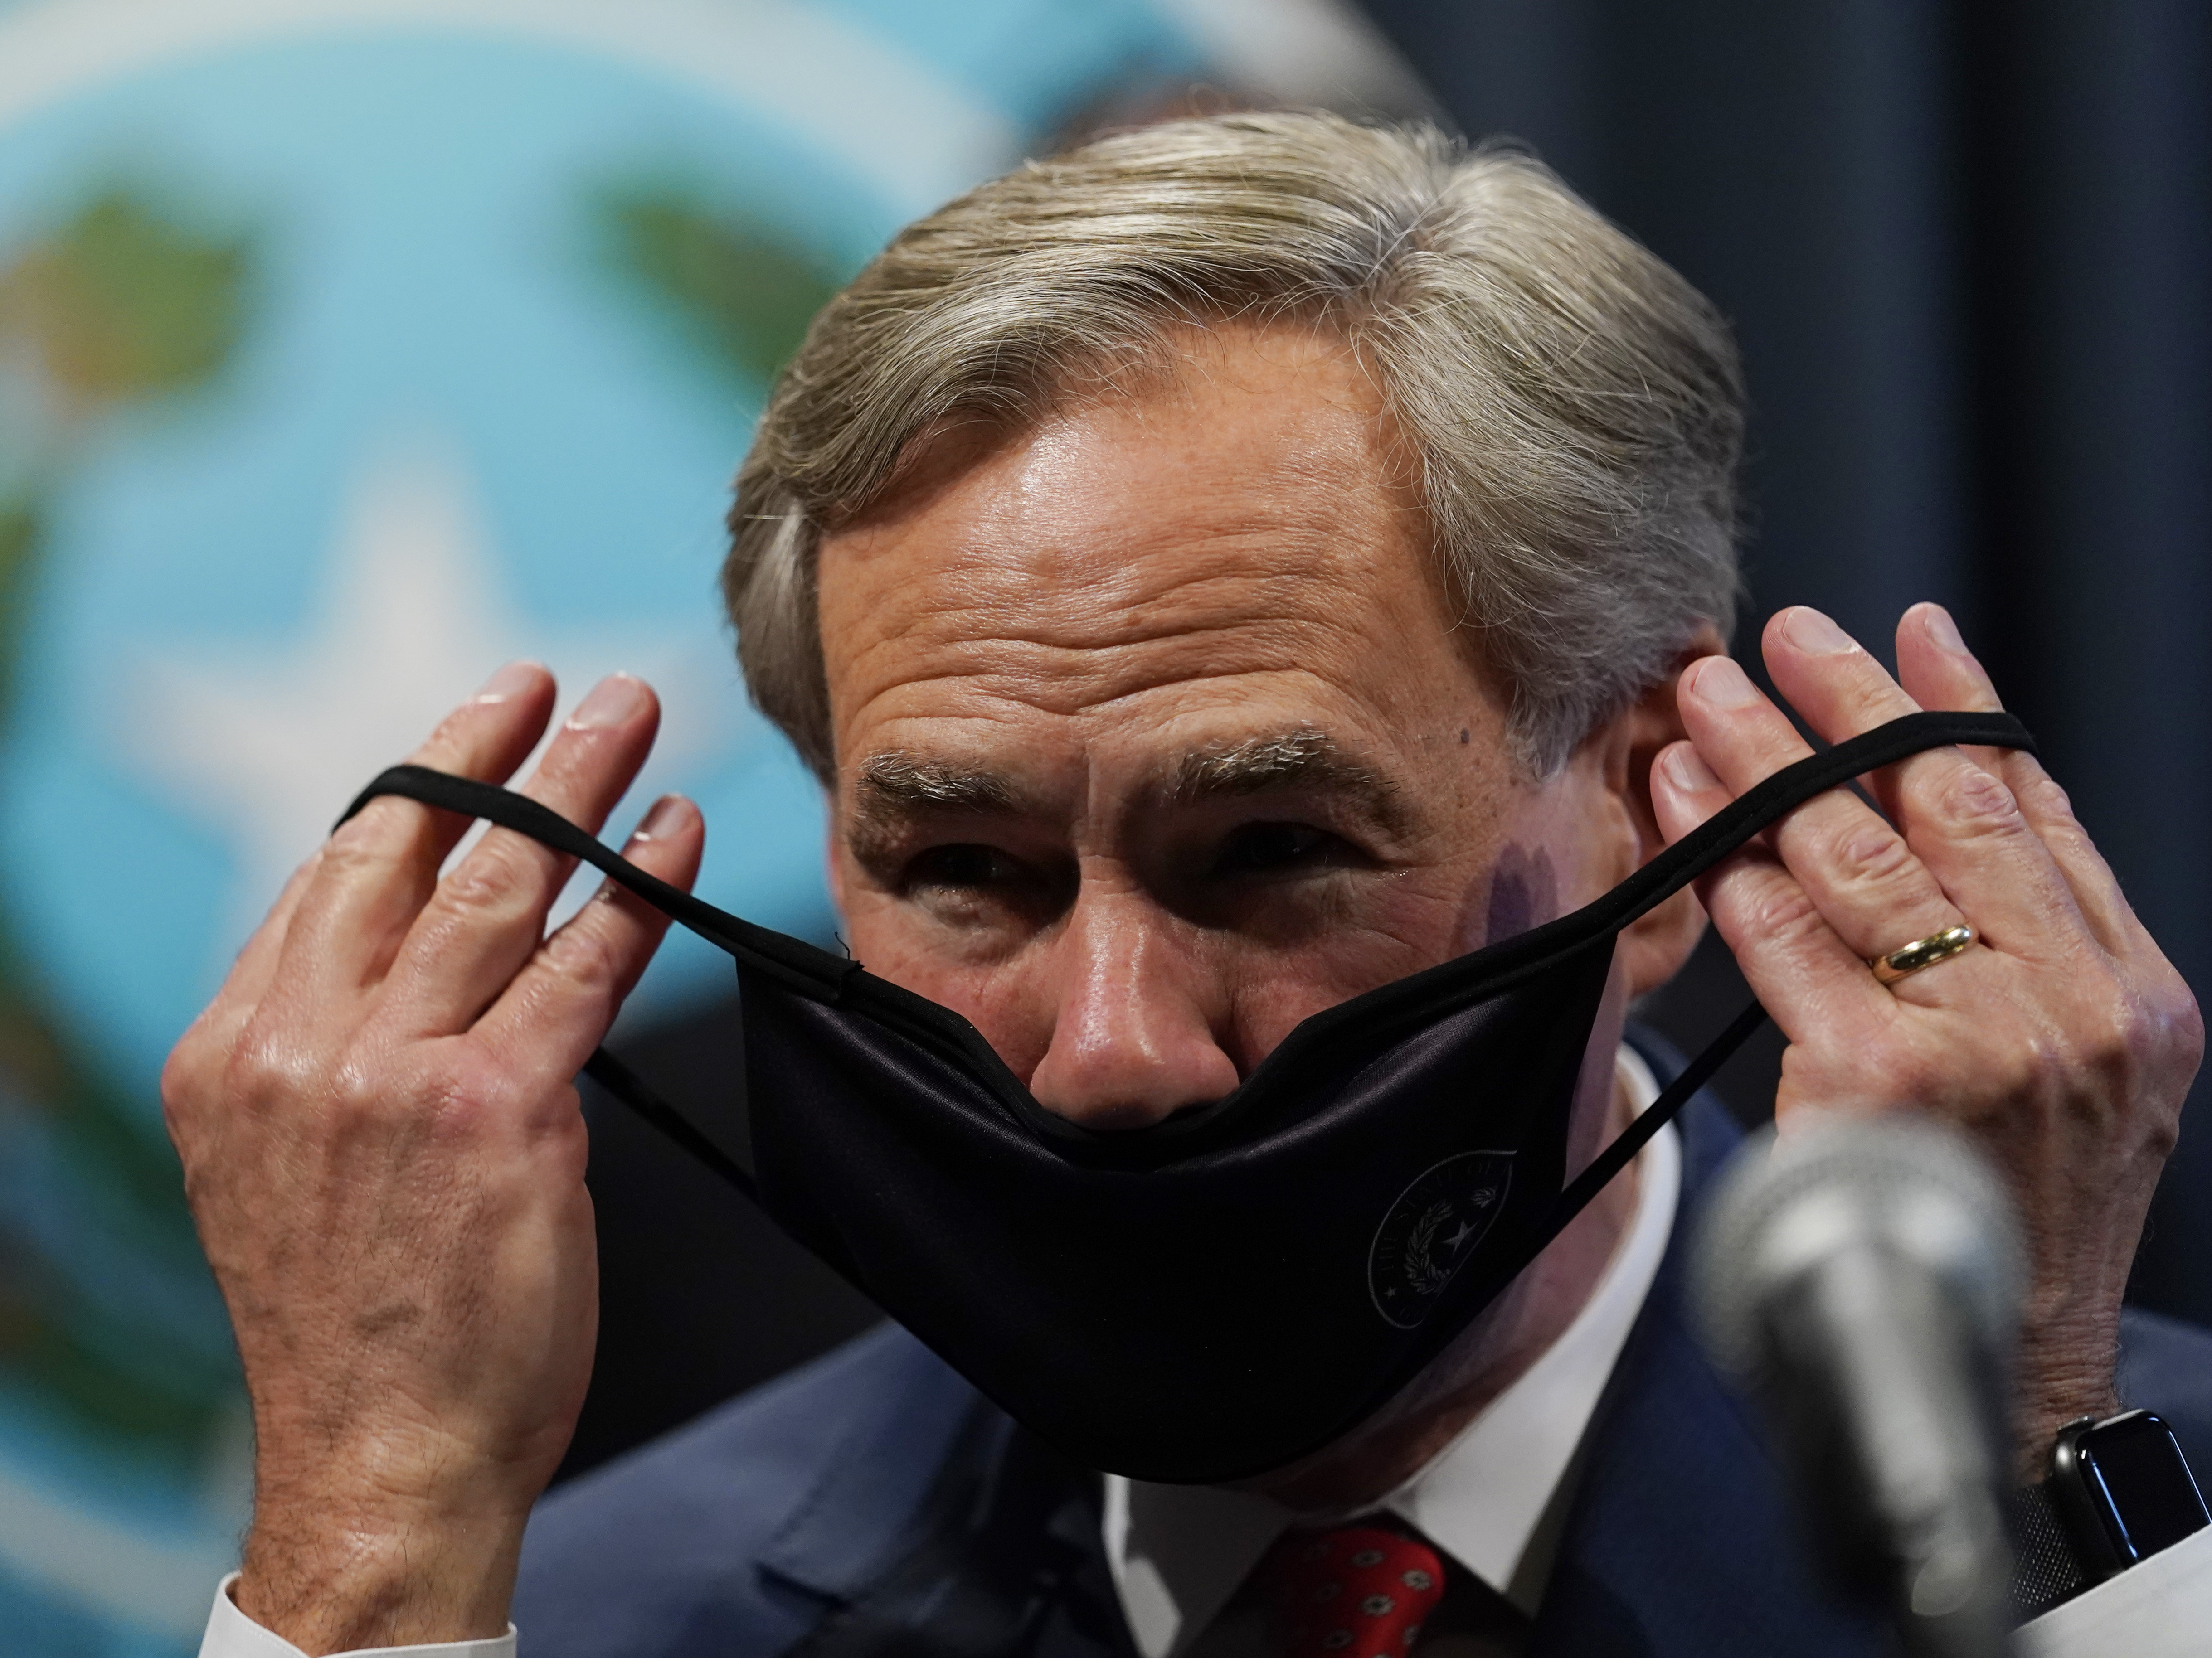 Texas And Mississippi To Lift COVID-19 Mask Mandates And Business Capacity Limits